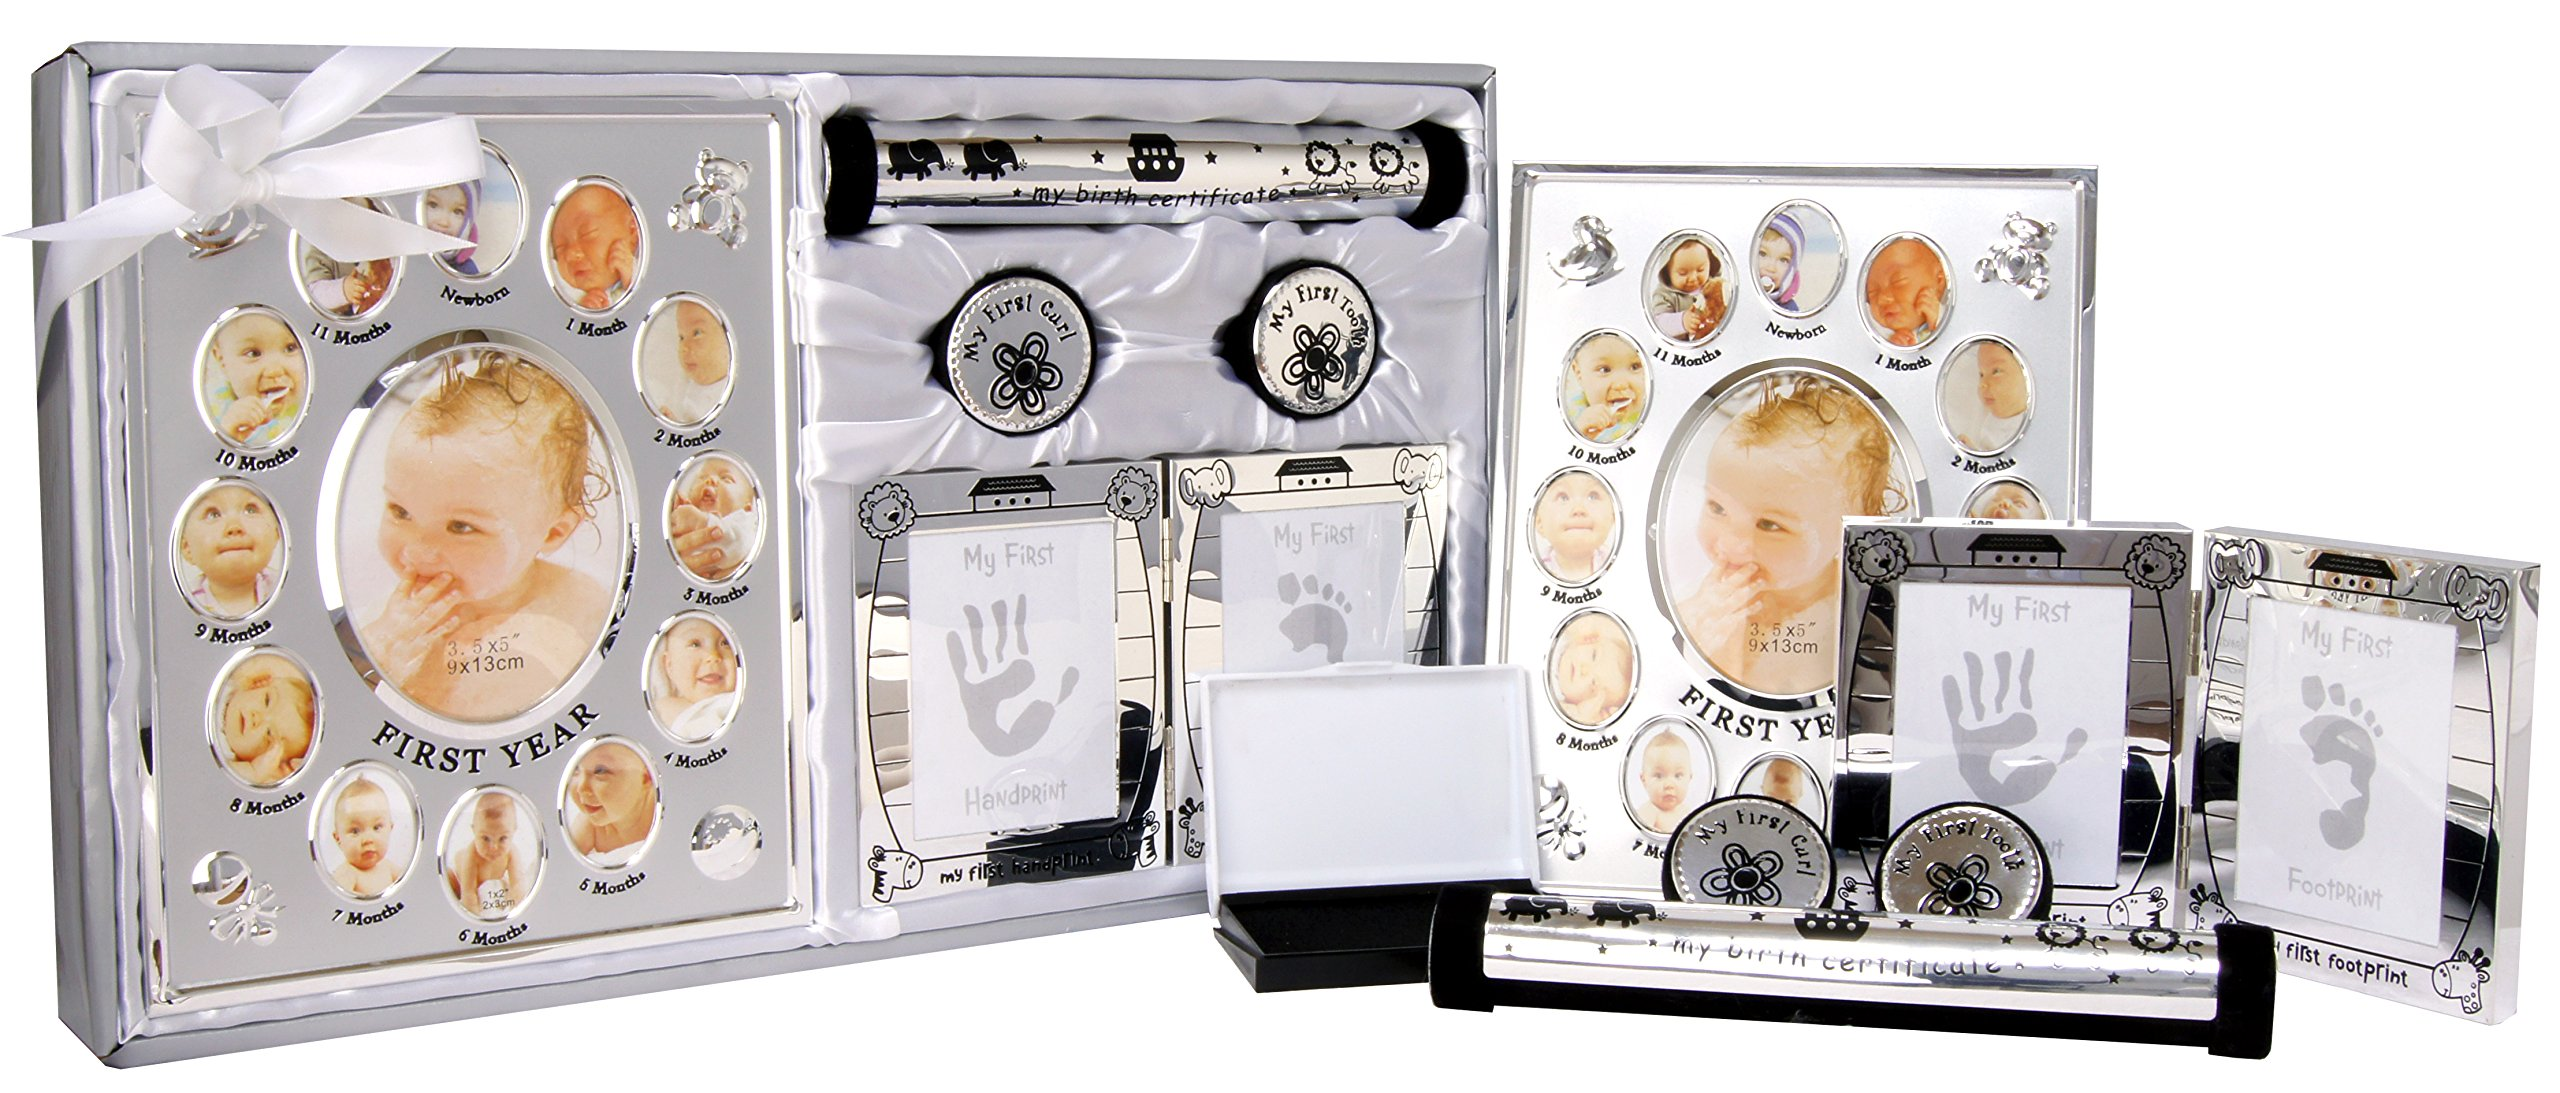 New 5 Piece Baby Keepsake Gift Set Suitable for Unisex, Boy, Girl, First Photo Frame, Curl and Tooth Box, Handprint Footprint Prints Kit. Available in Pink, Blue and Silver. (Shiny Silver) by BabyRice